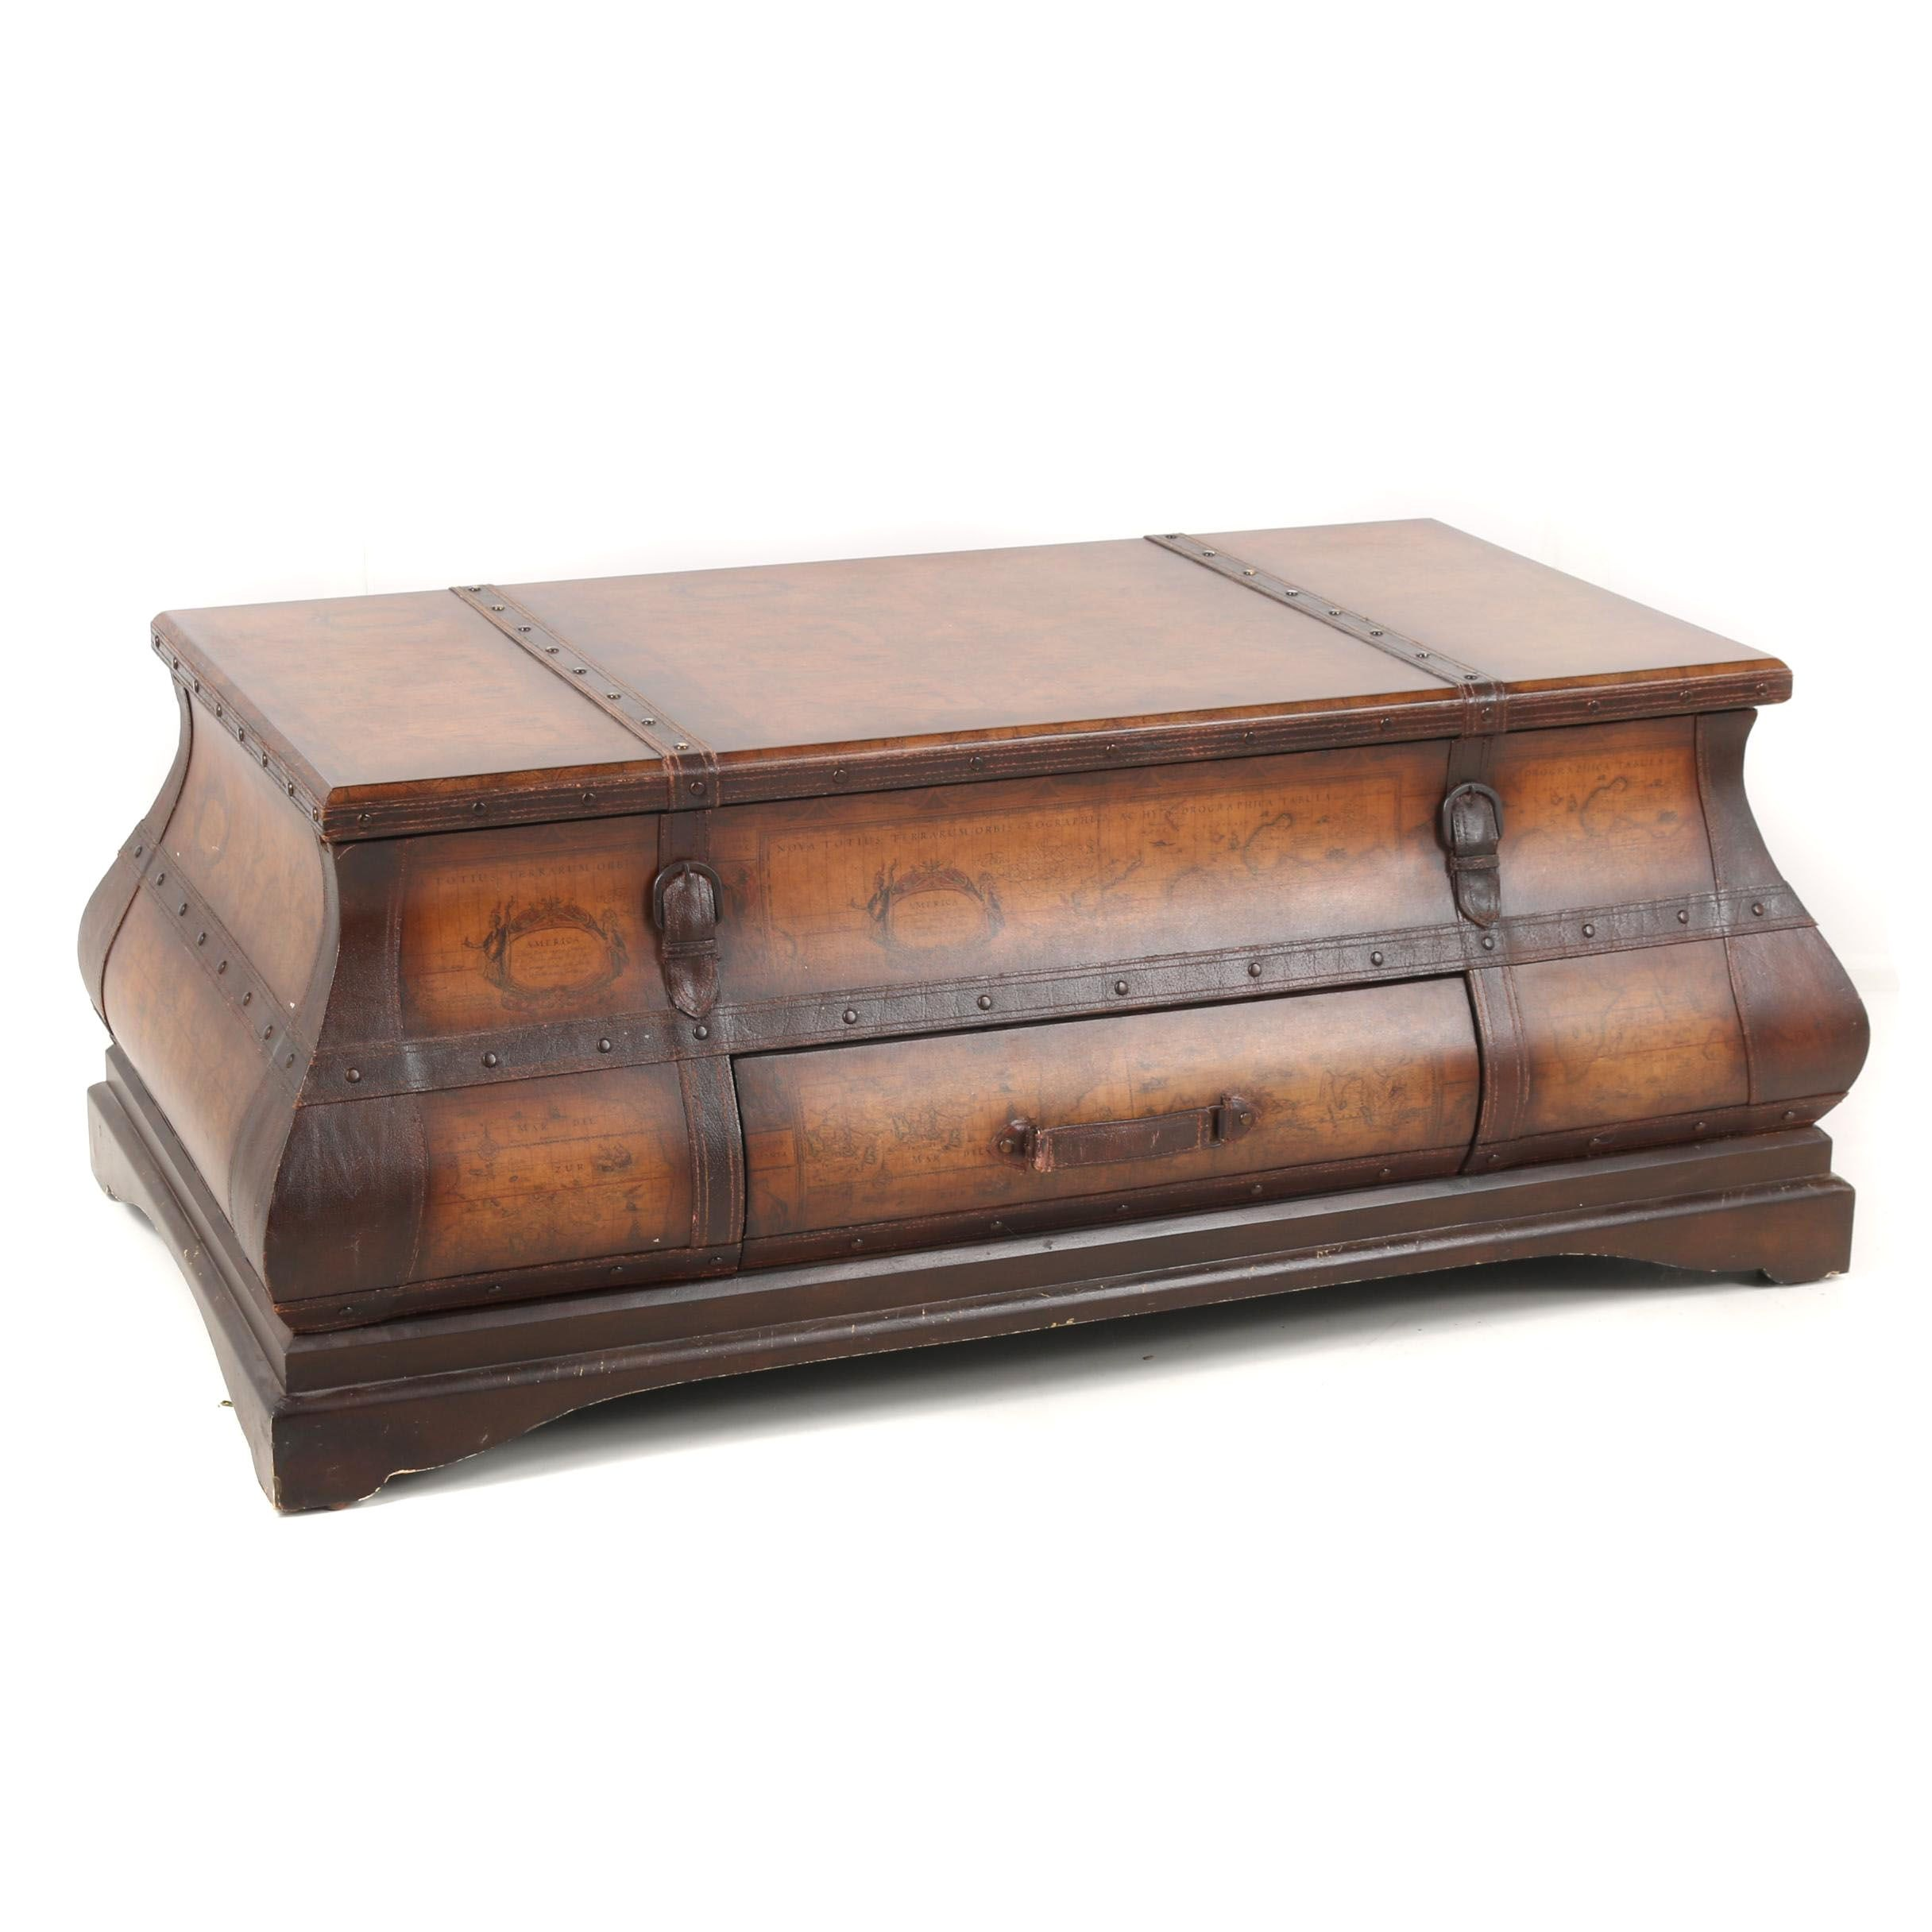 Faux Map Bombe Trunk Style Coffee Table, 21st Century